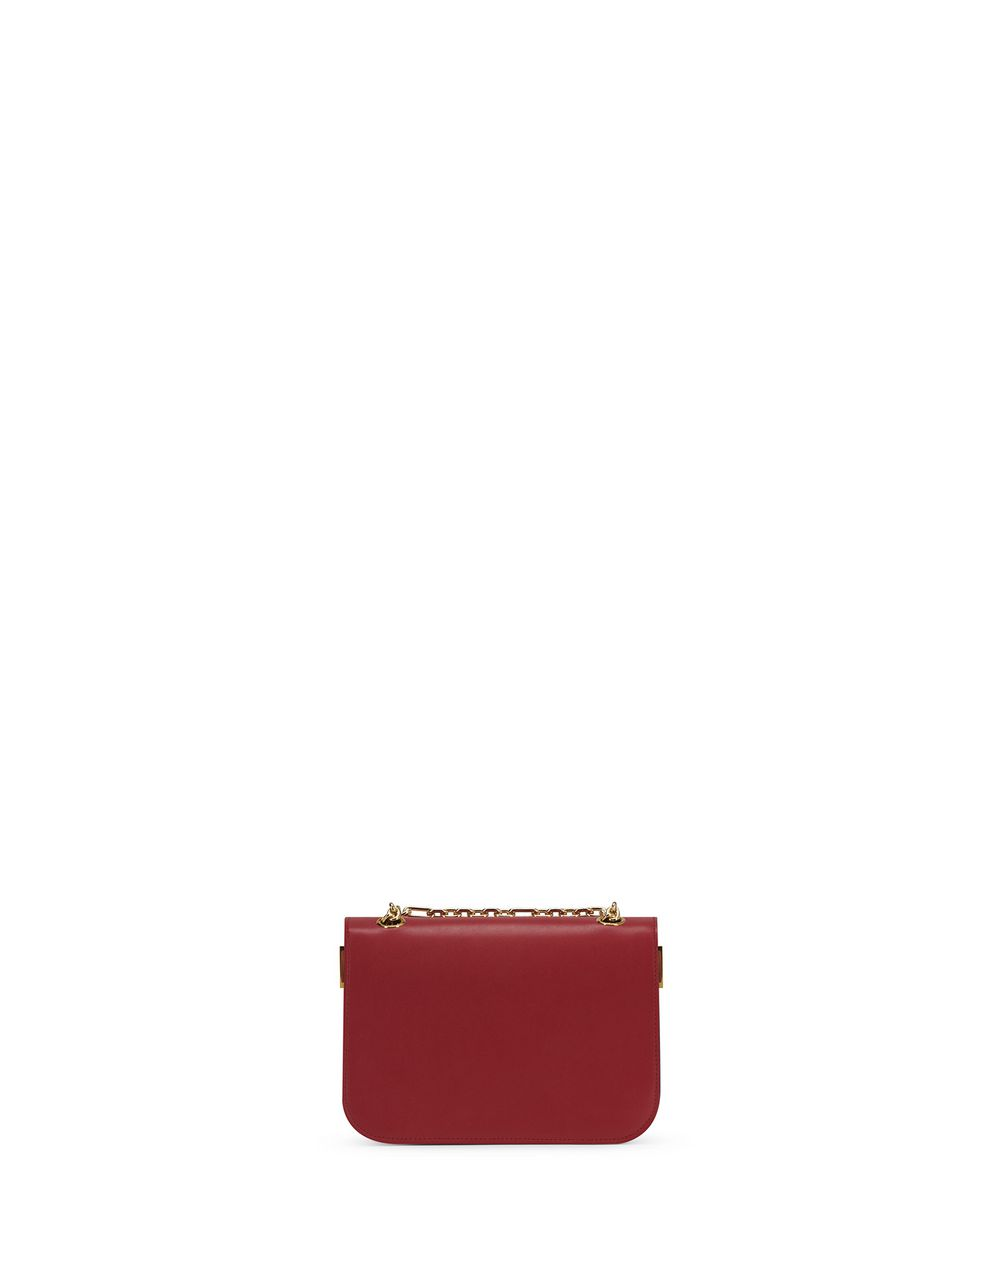 SWAN BOX CHAIN BAGSM IN CALFSKIN LEATHER - Lanvin